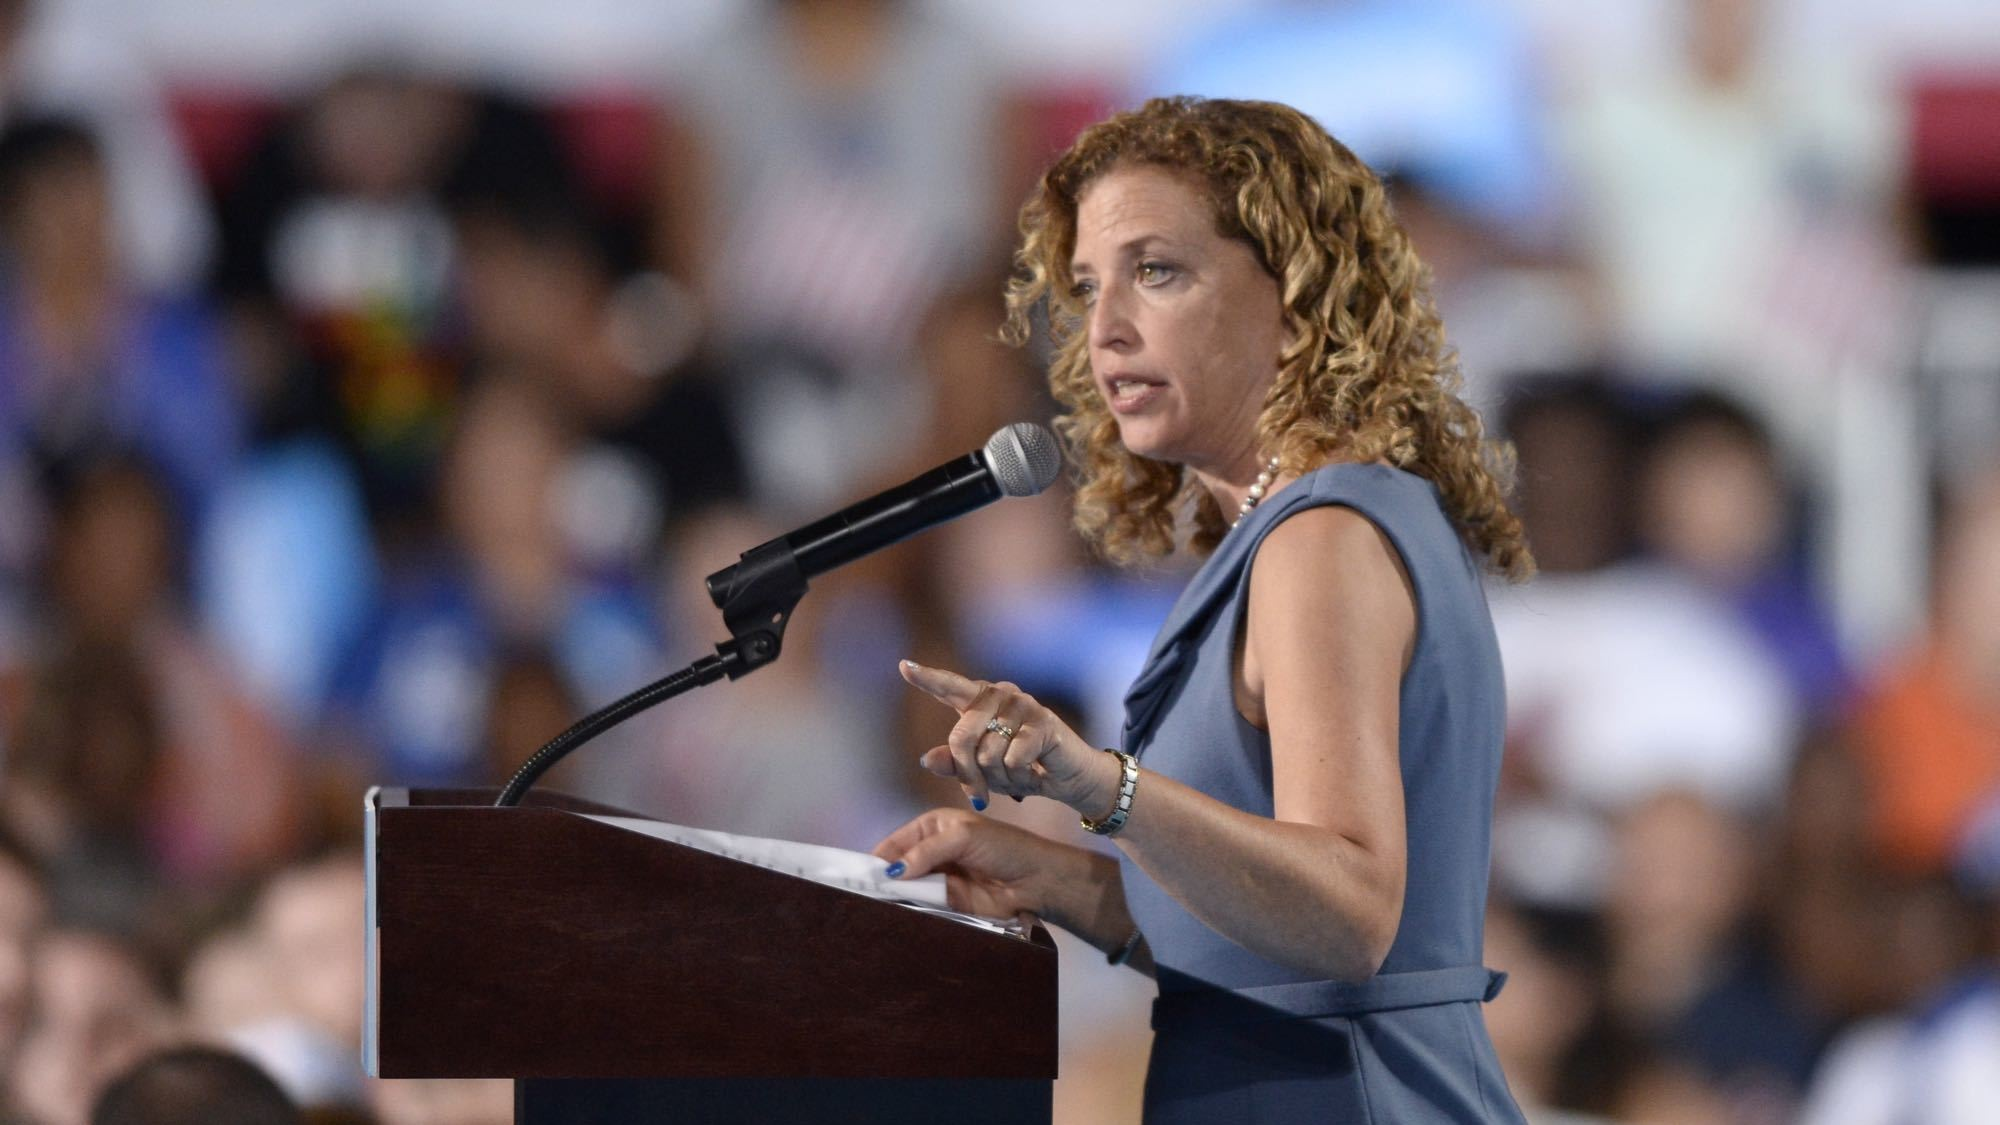 DNC chair Debbie Wasserman Shultz resigns over Wikileaks scandal